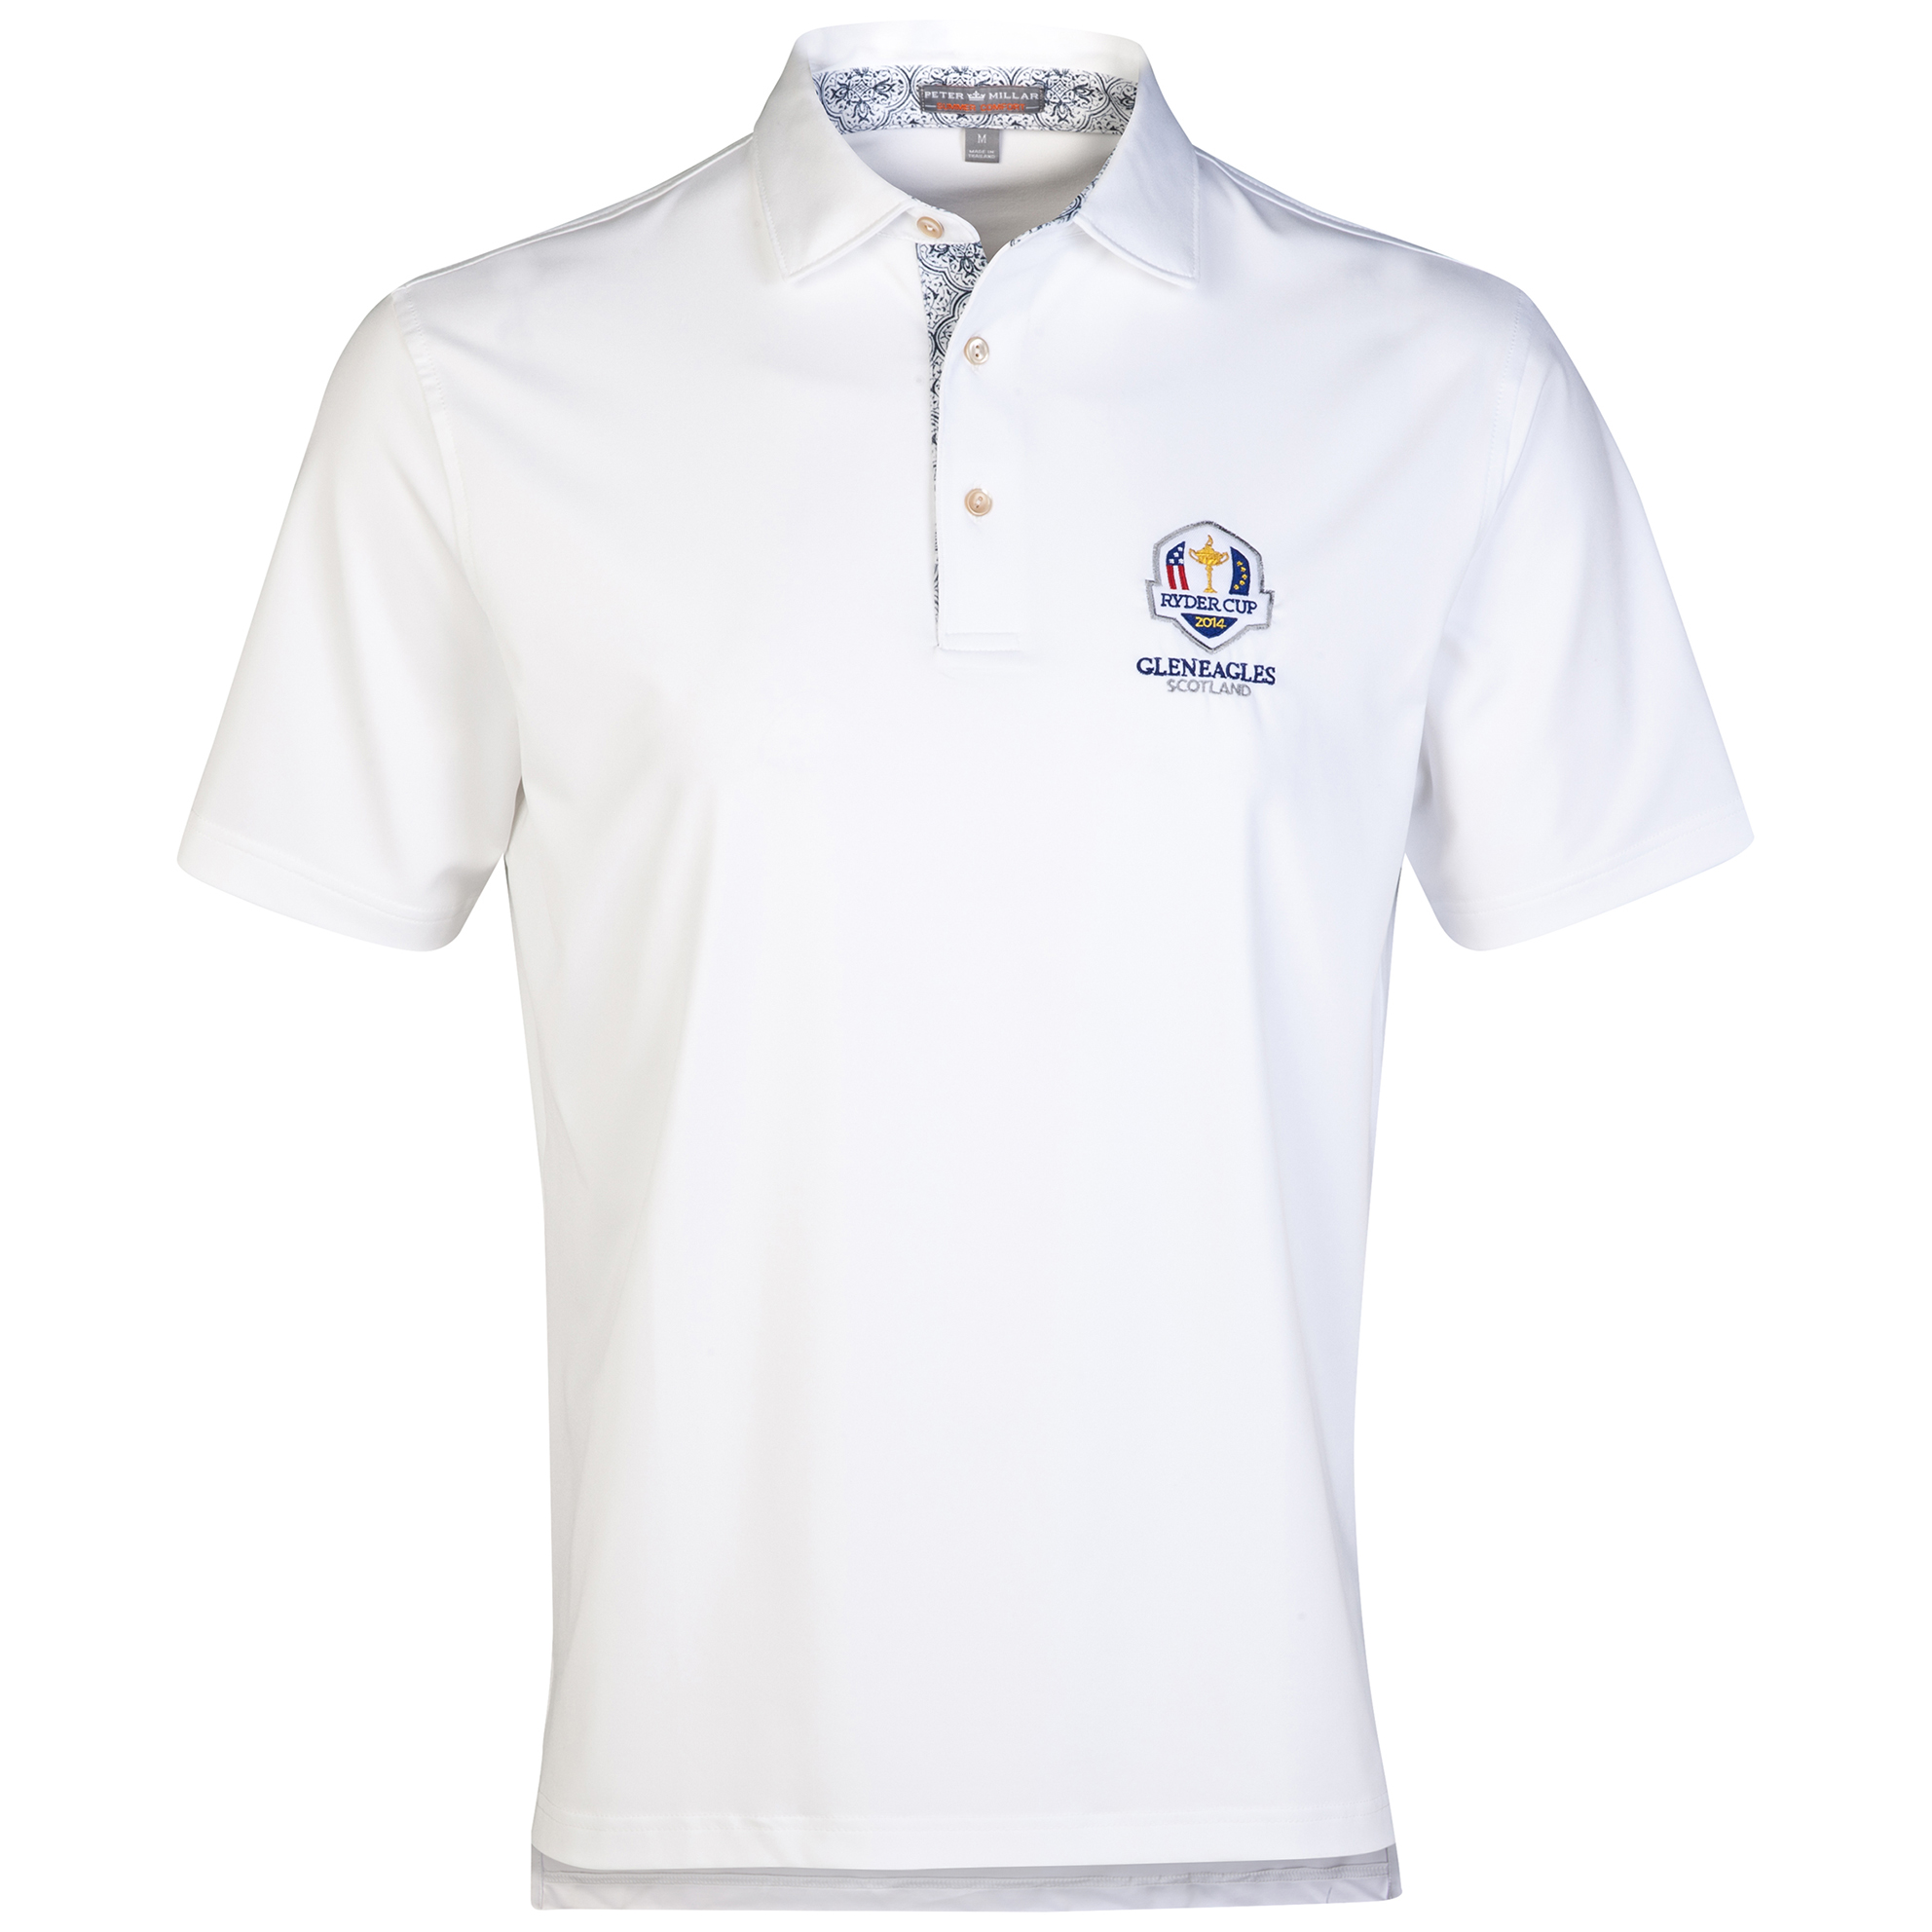 The 2014 Ryder Cup Peter Millar Contrast Collar Solid Stretch Polo